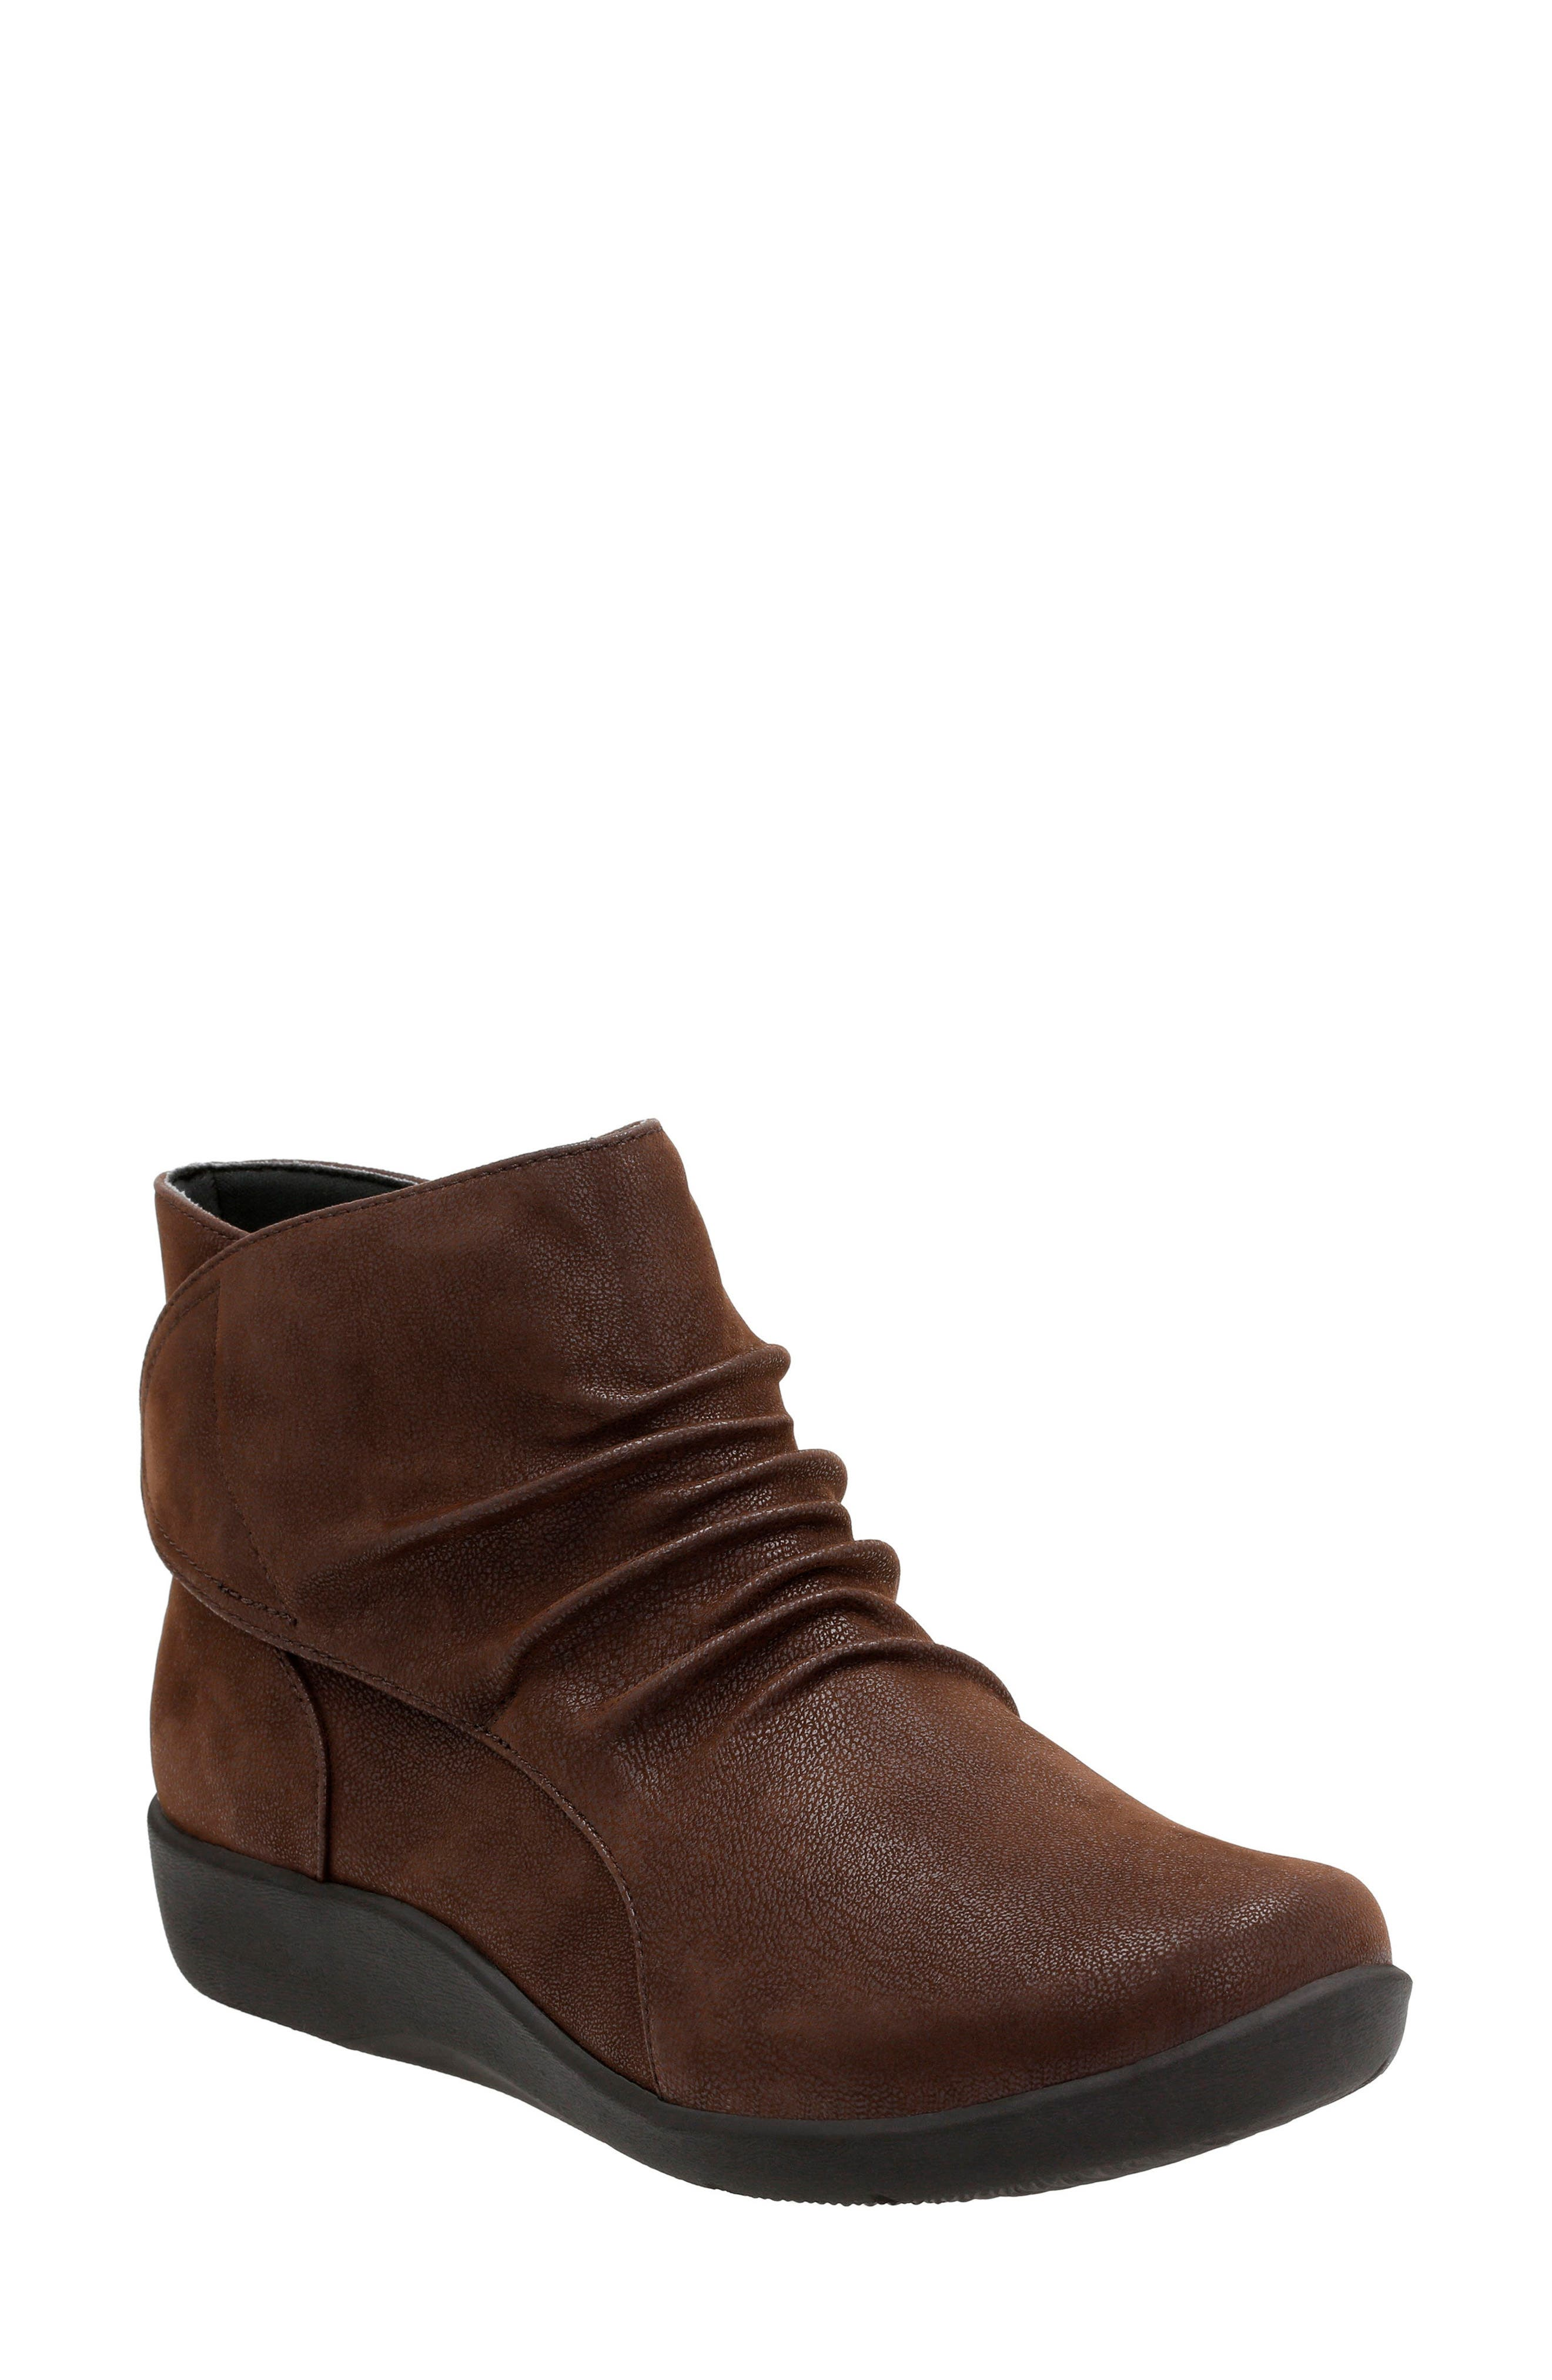 Sillian Sway Boot,                         Main,                         color, BROWN FABRIC